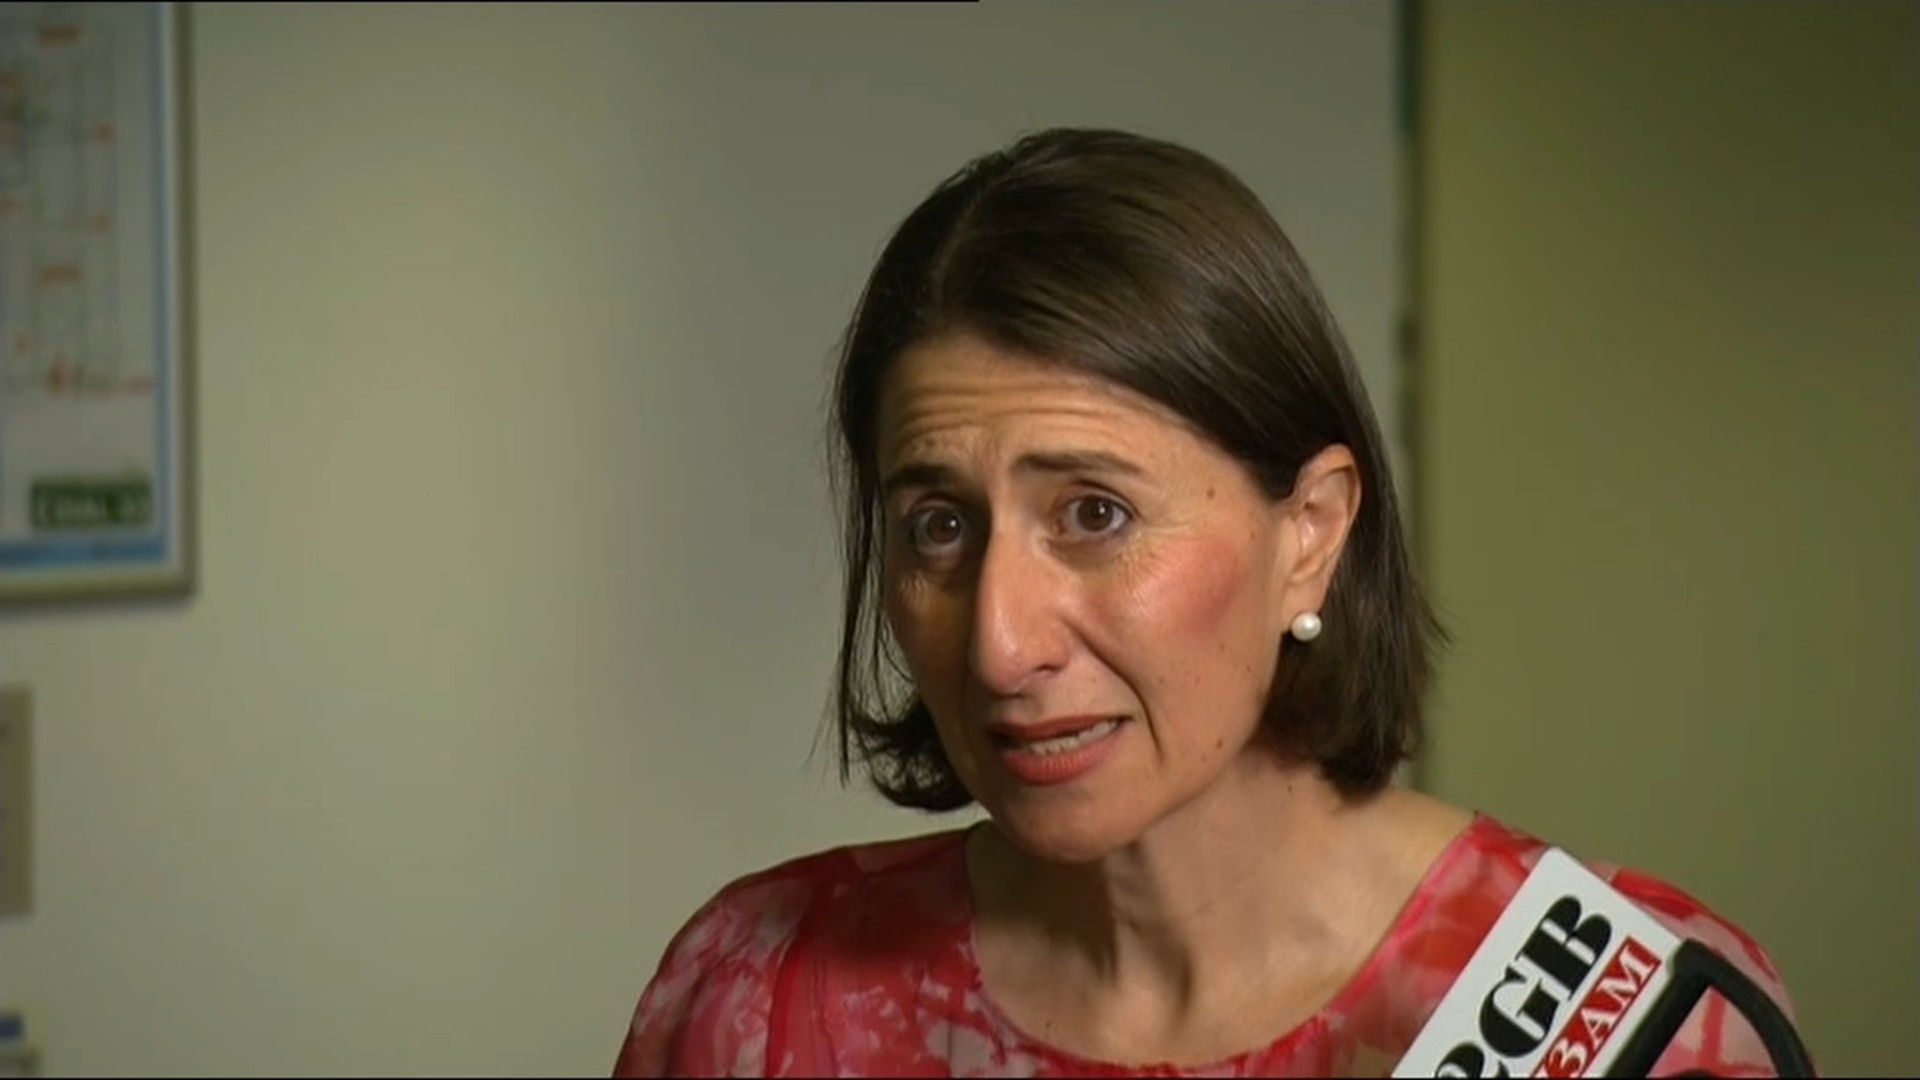 NSW Premier Gladys Berejiklian has expressed dismay that young people are not heeding the message that drugs can kill.